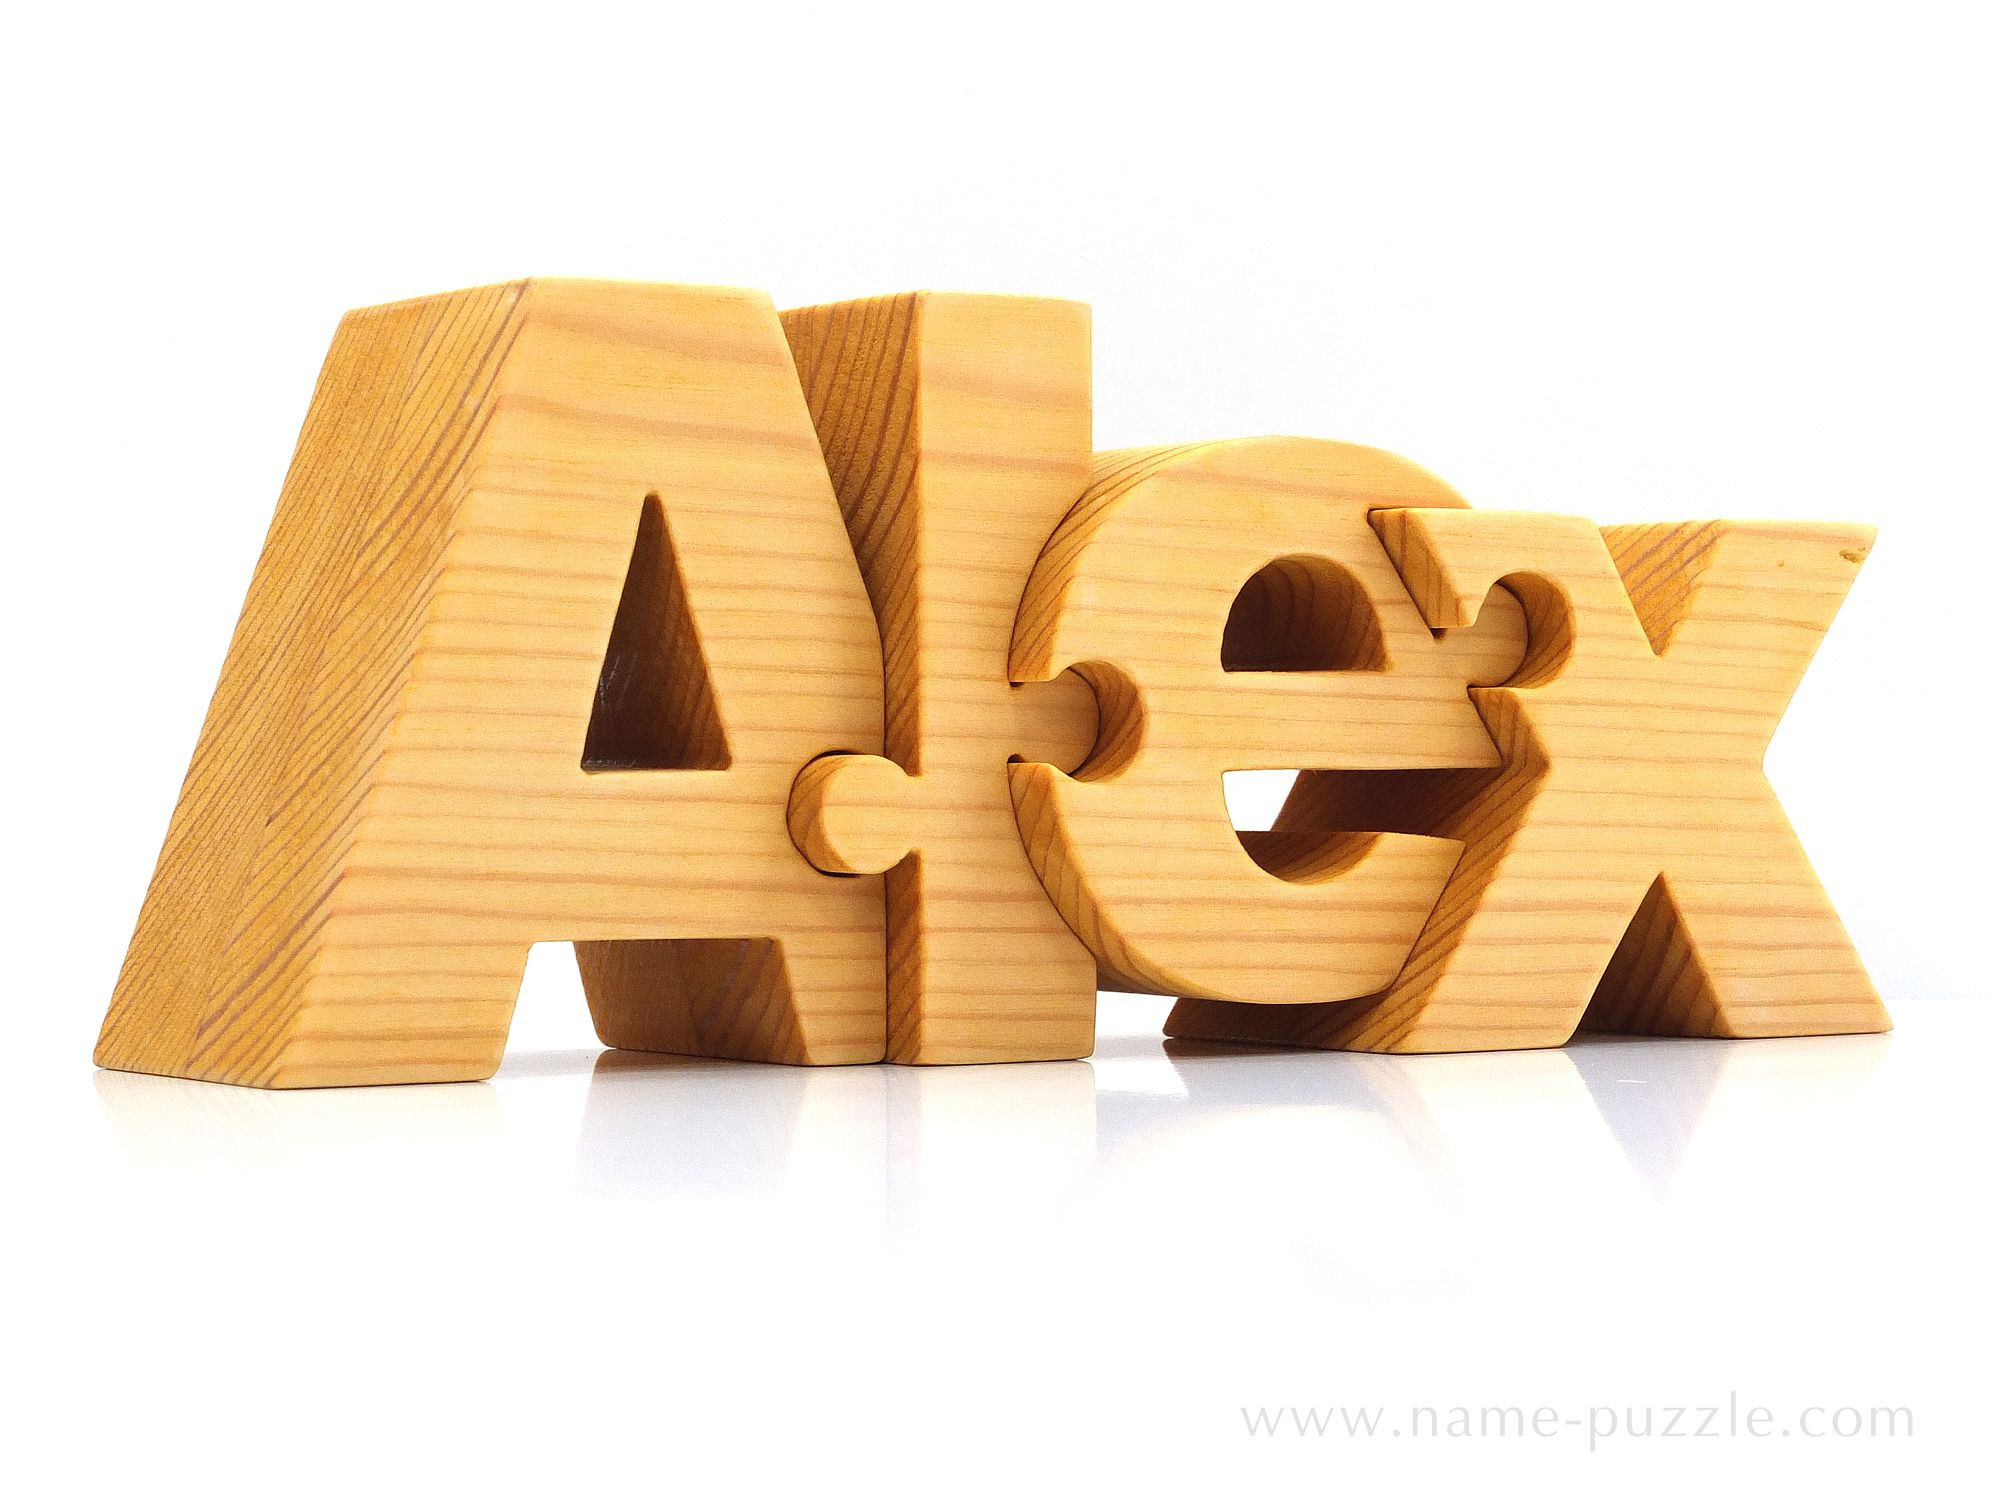 Best ideas about Wooden Gift Ideas . Save or Pin Wooden name puzzle unique t idea Now.